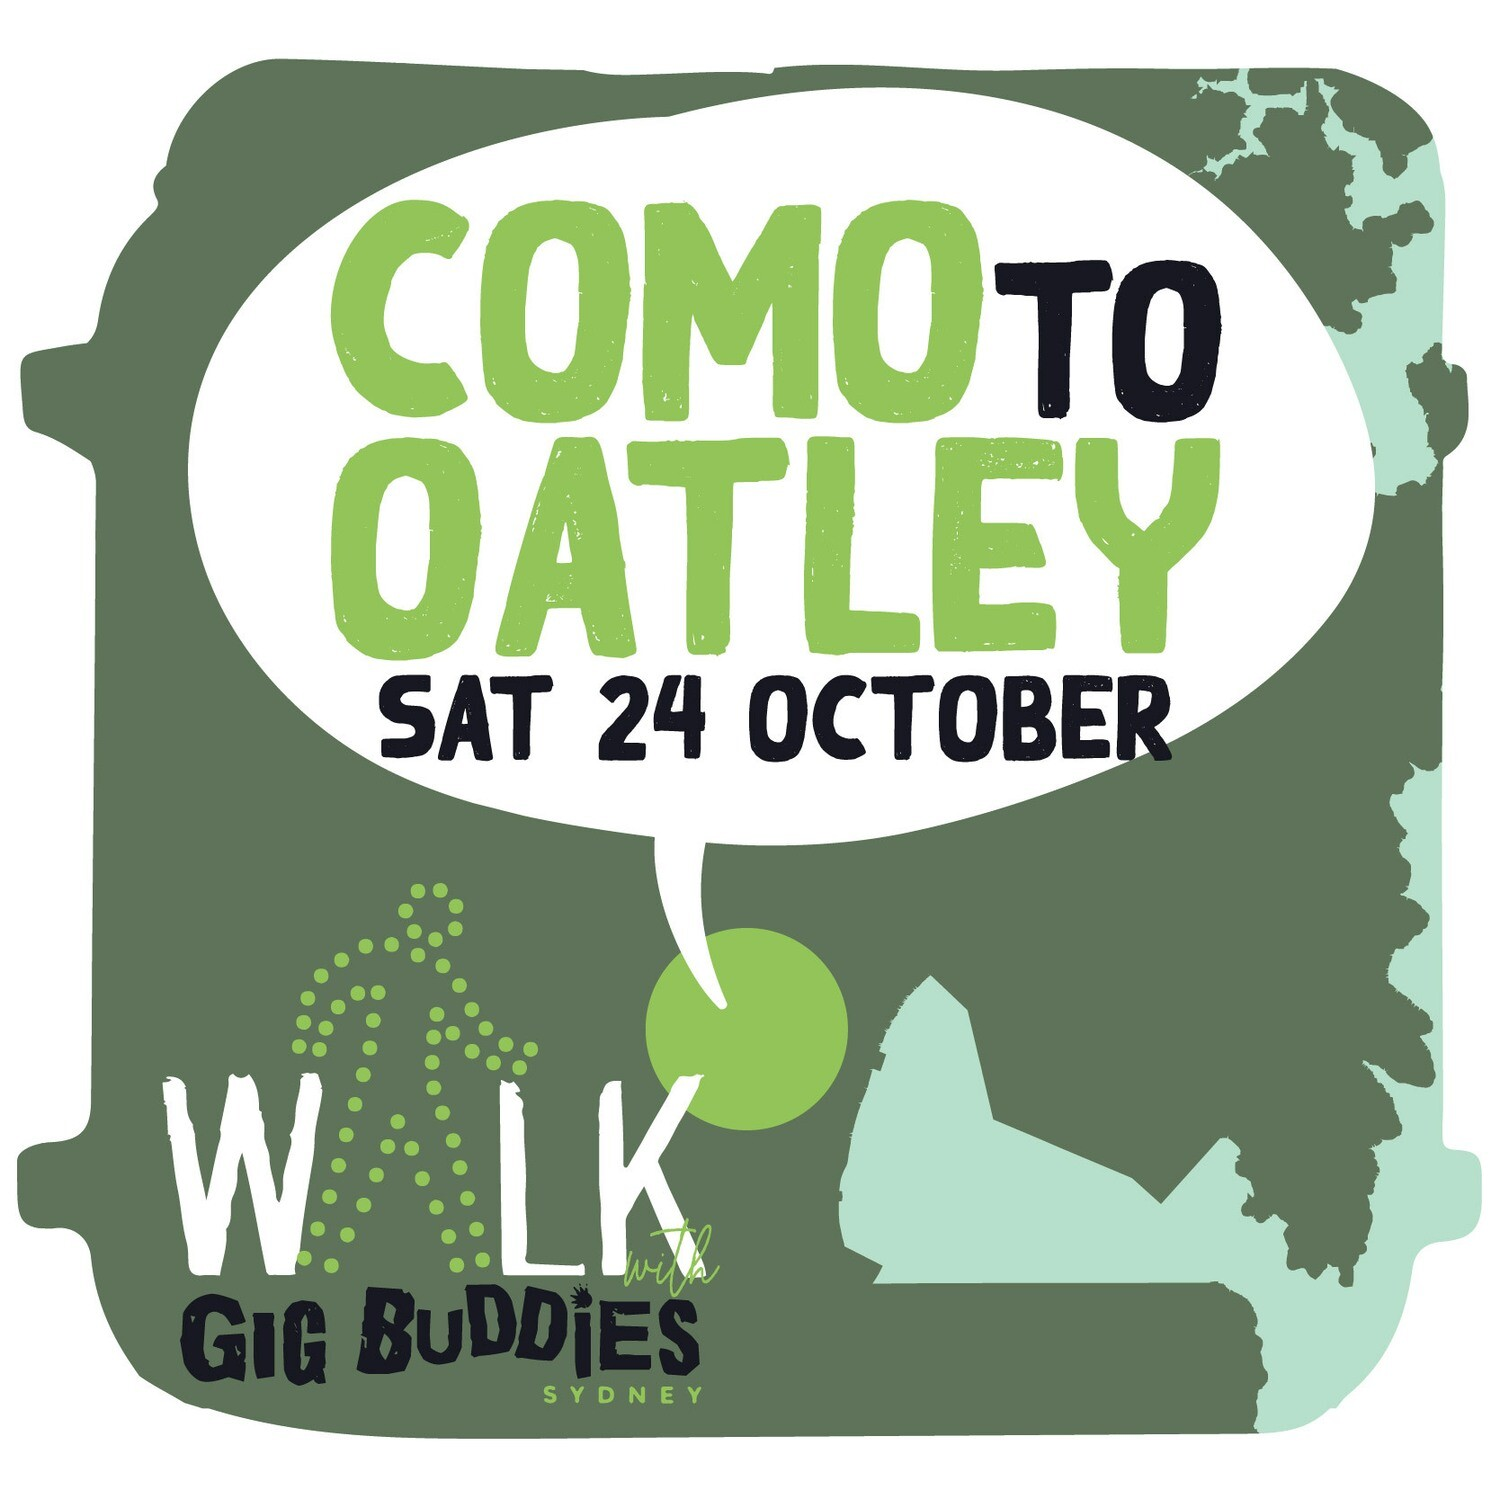 Como Train Station to Oatley Train Station - Saturday 24 October @ midday